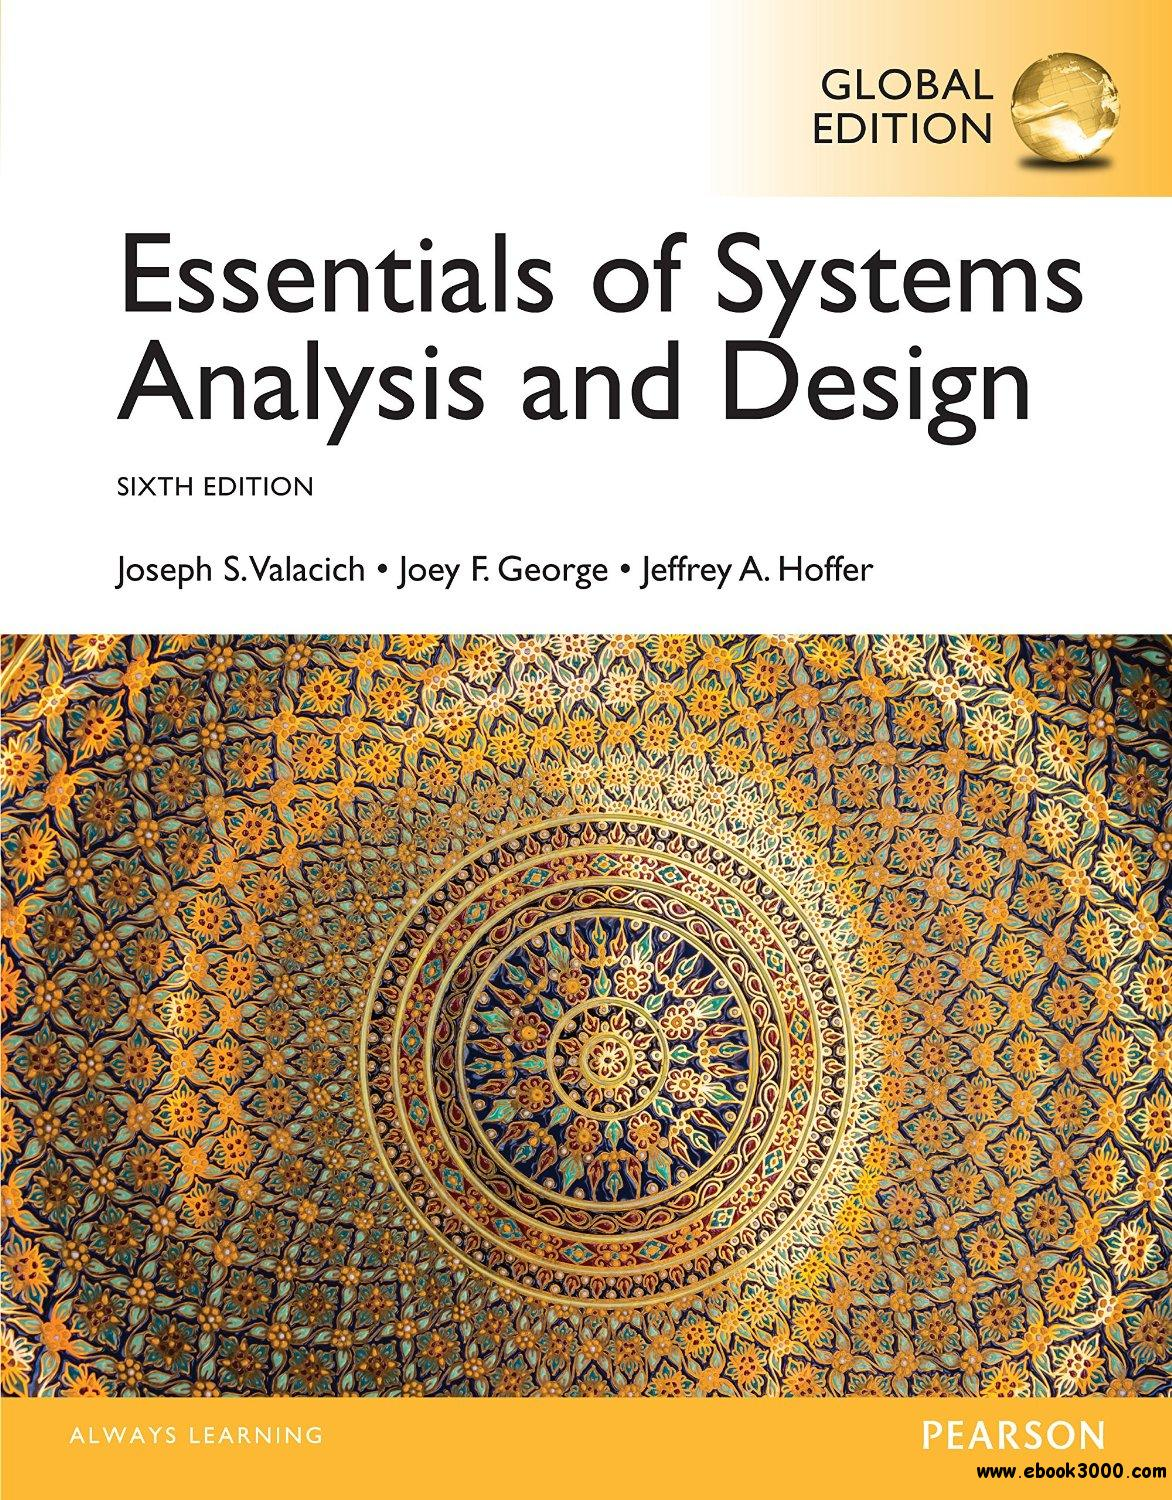 Essentials of systems analysis and design free ebooks download fandeluxe Choice Image